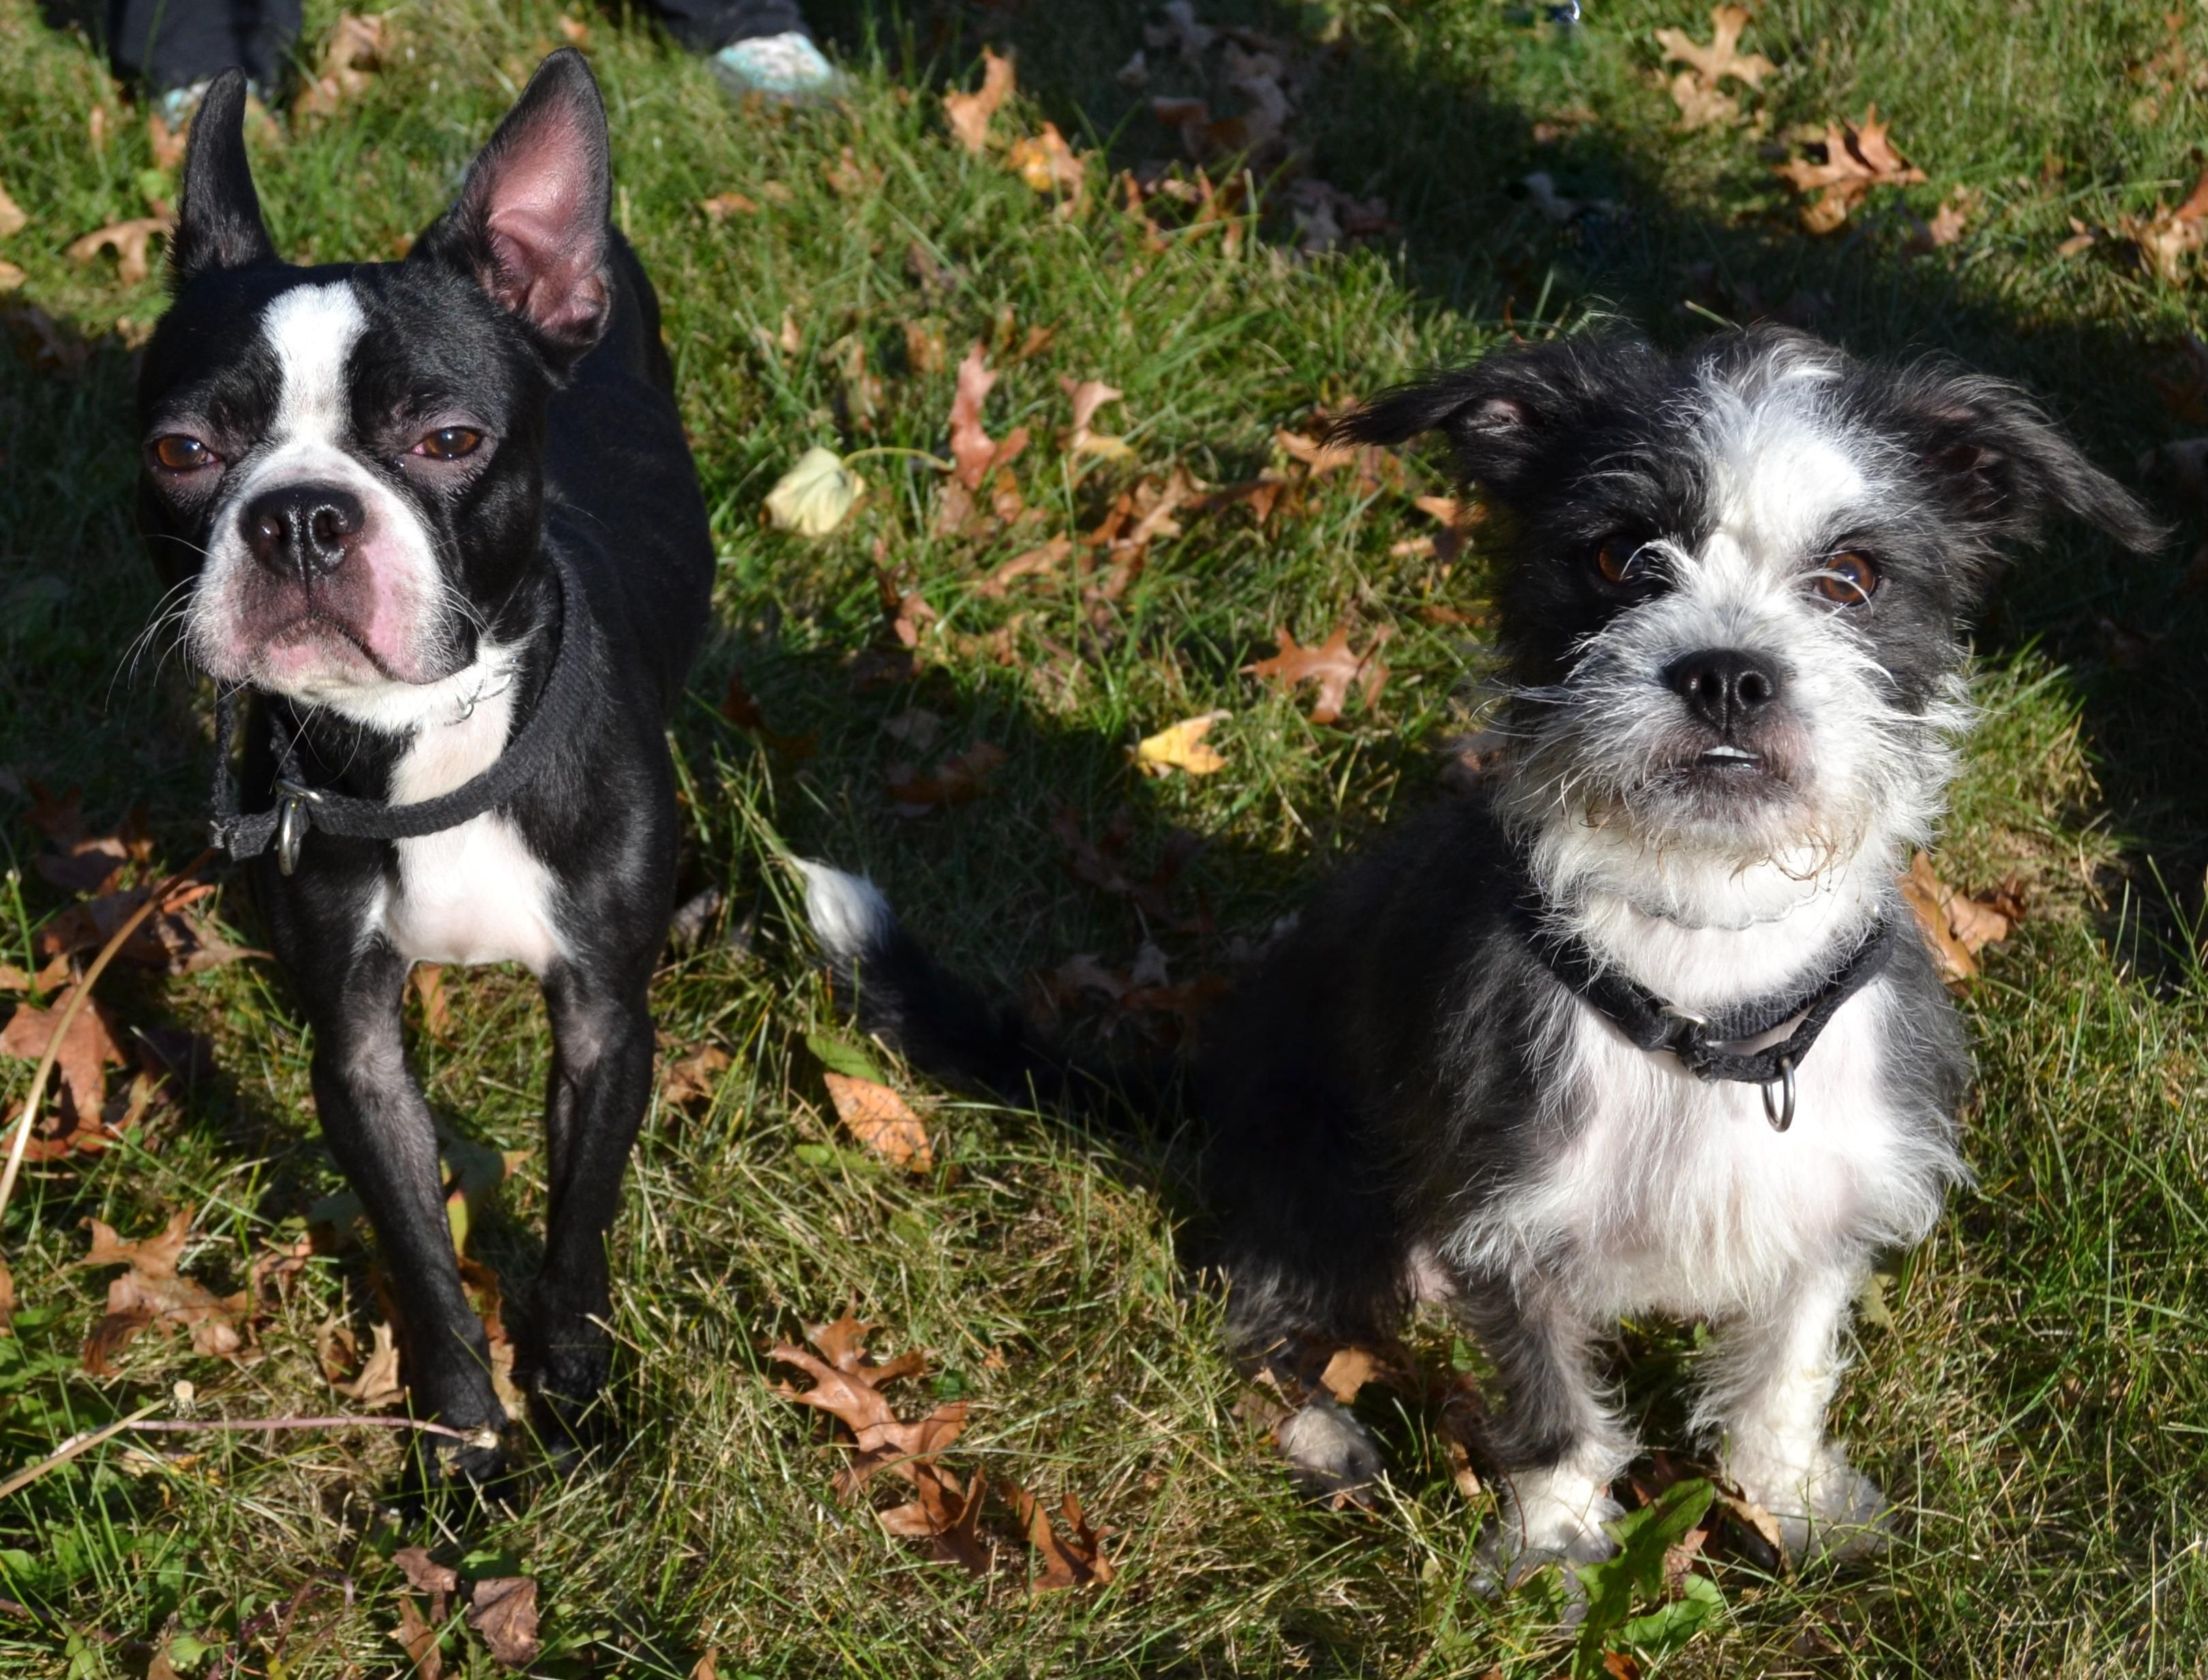 Max And Louis Is An Adoptable Boston Terrier Shih Tzu Dog In Michigan City In Max 4 Year Old Boston Terrier And Louis 1 Y Dogs Boston Terrier Shih Tzu Dog